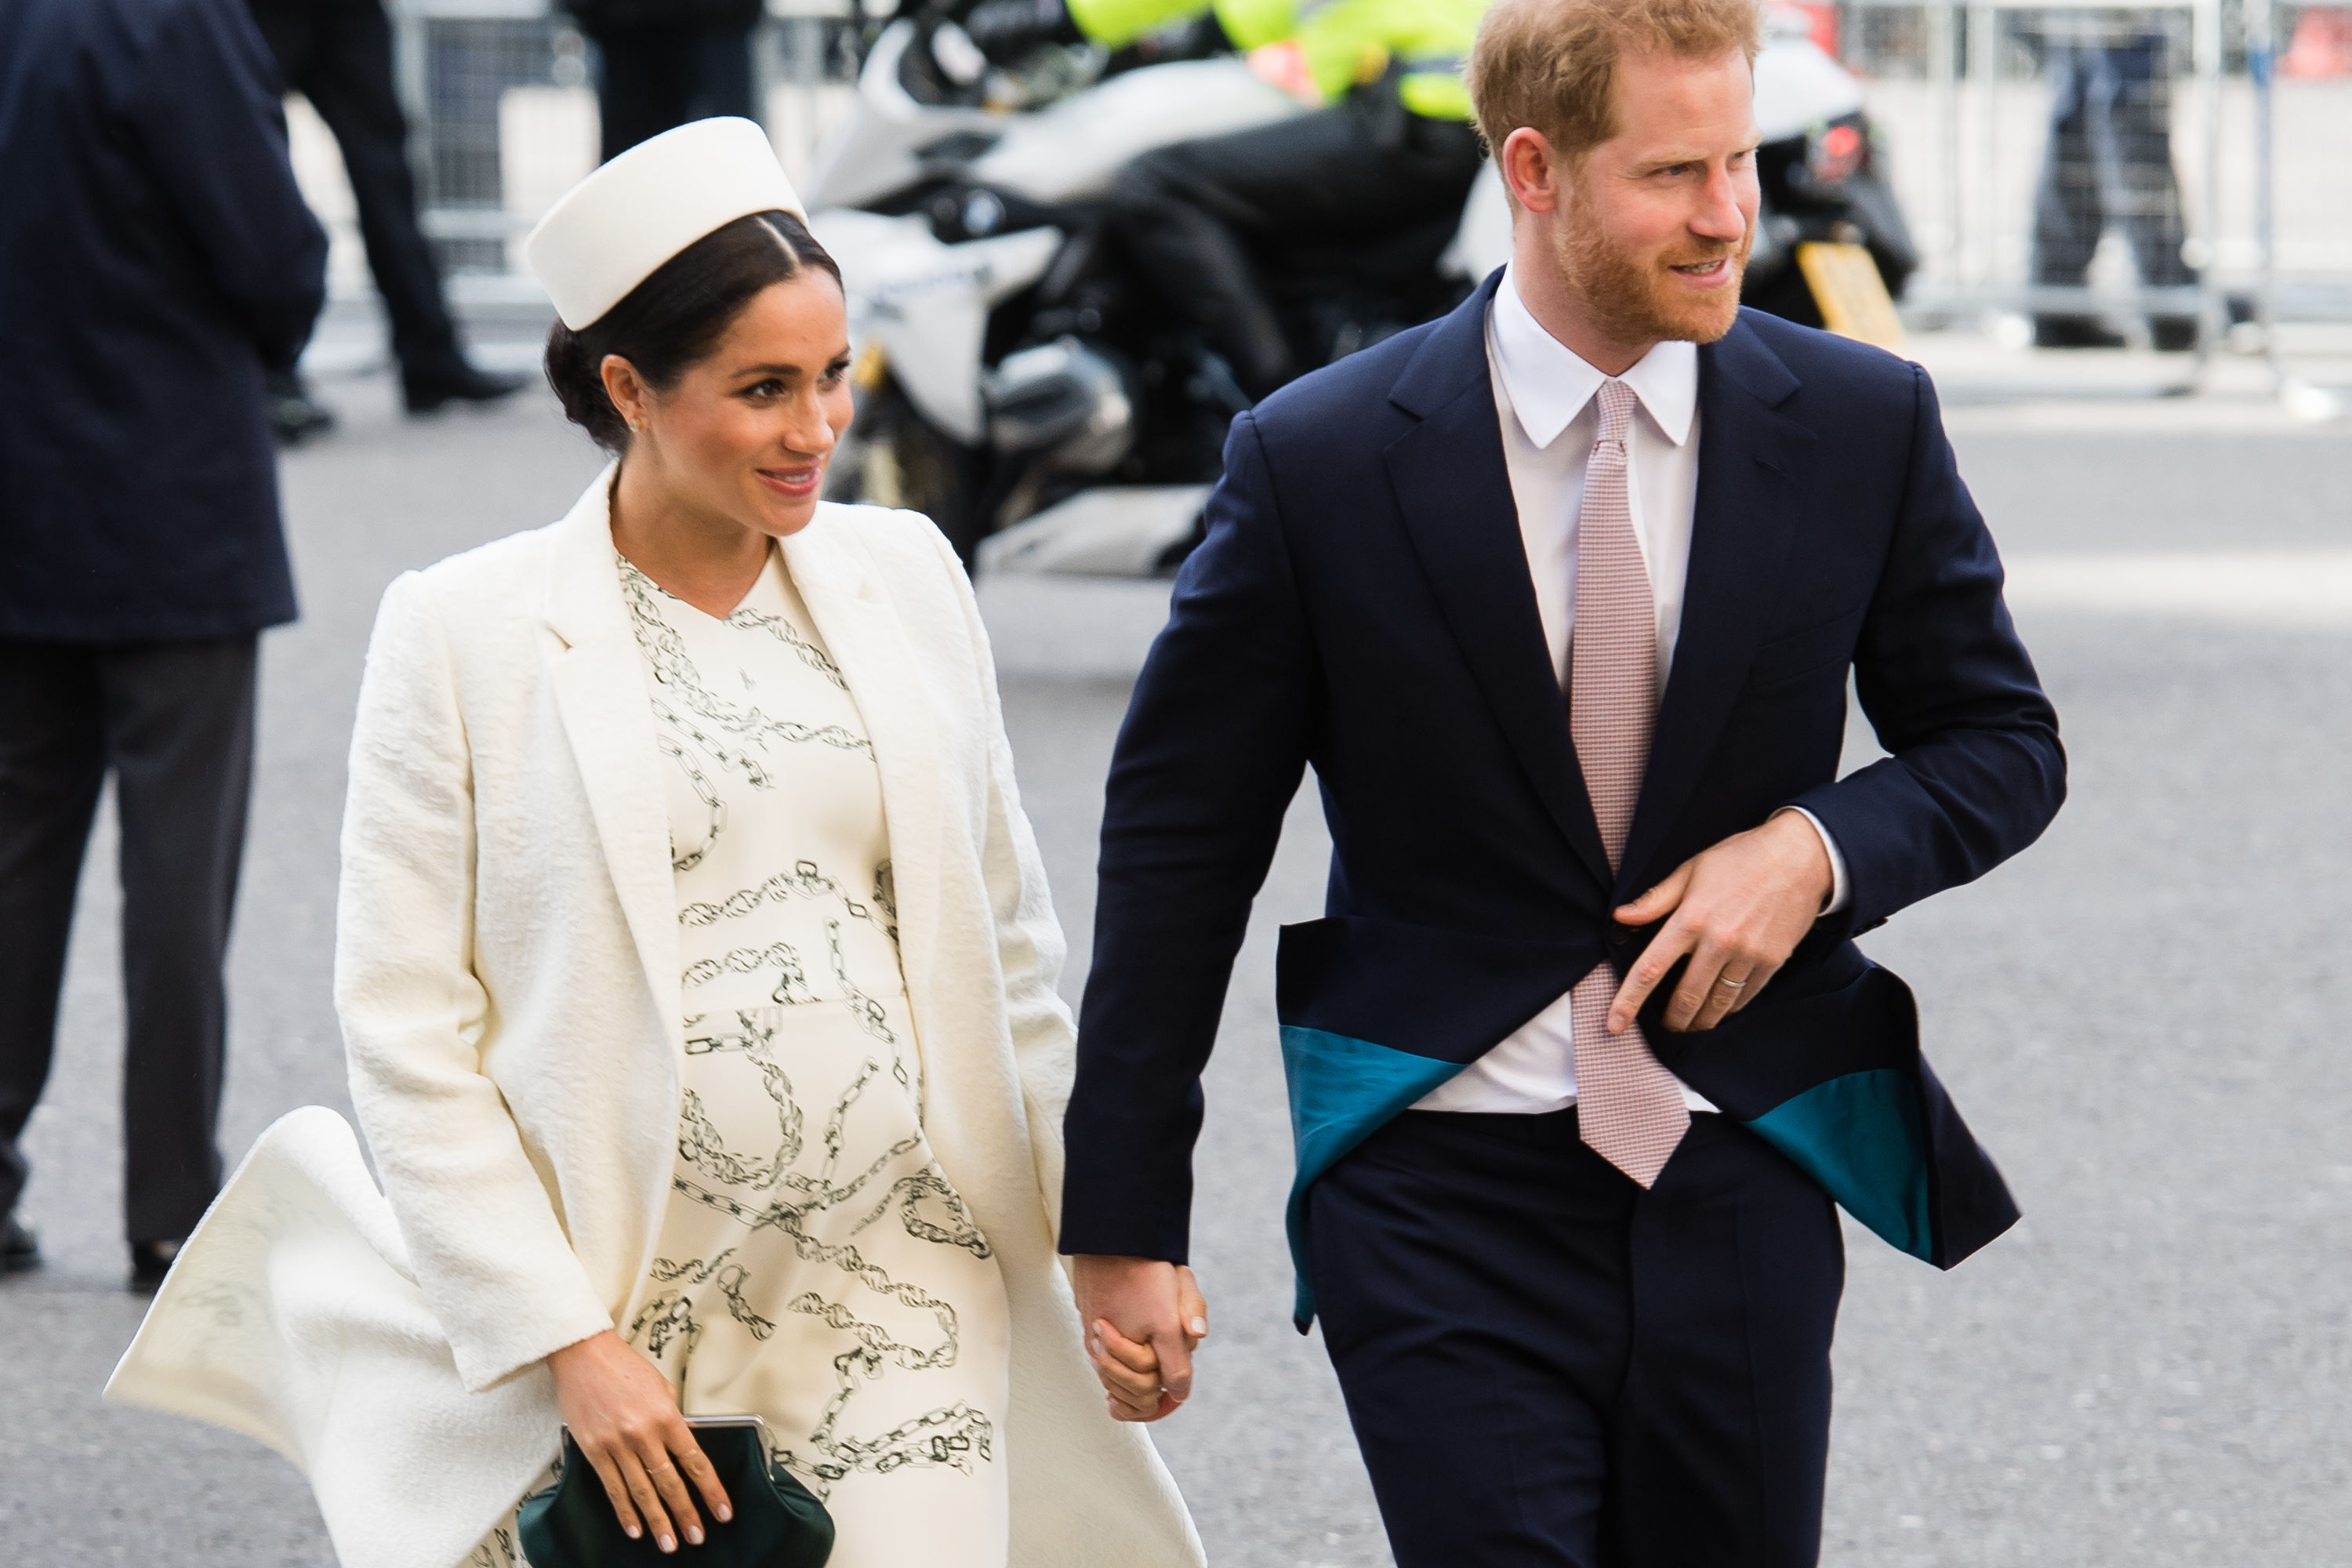 Meghan Markle Didn't Have a Home Birth After All — Here's Where the Royal Baby Was Really Delivered